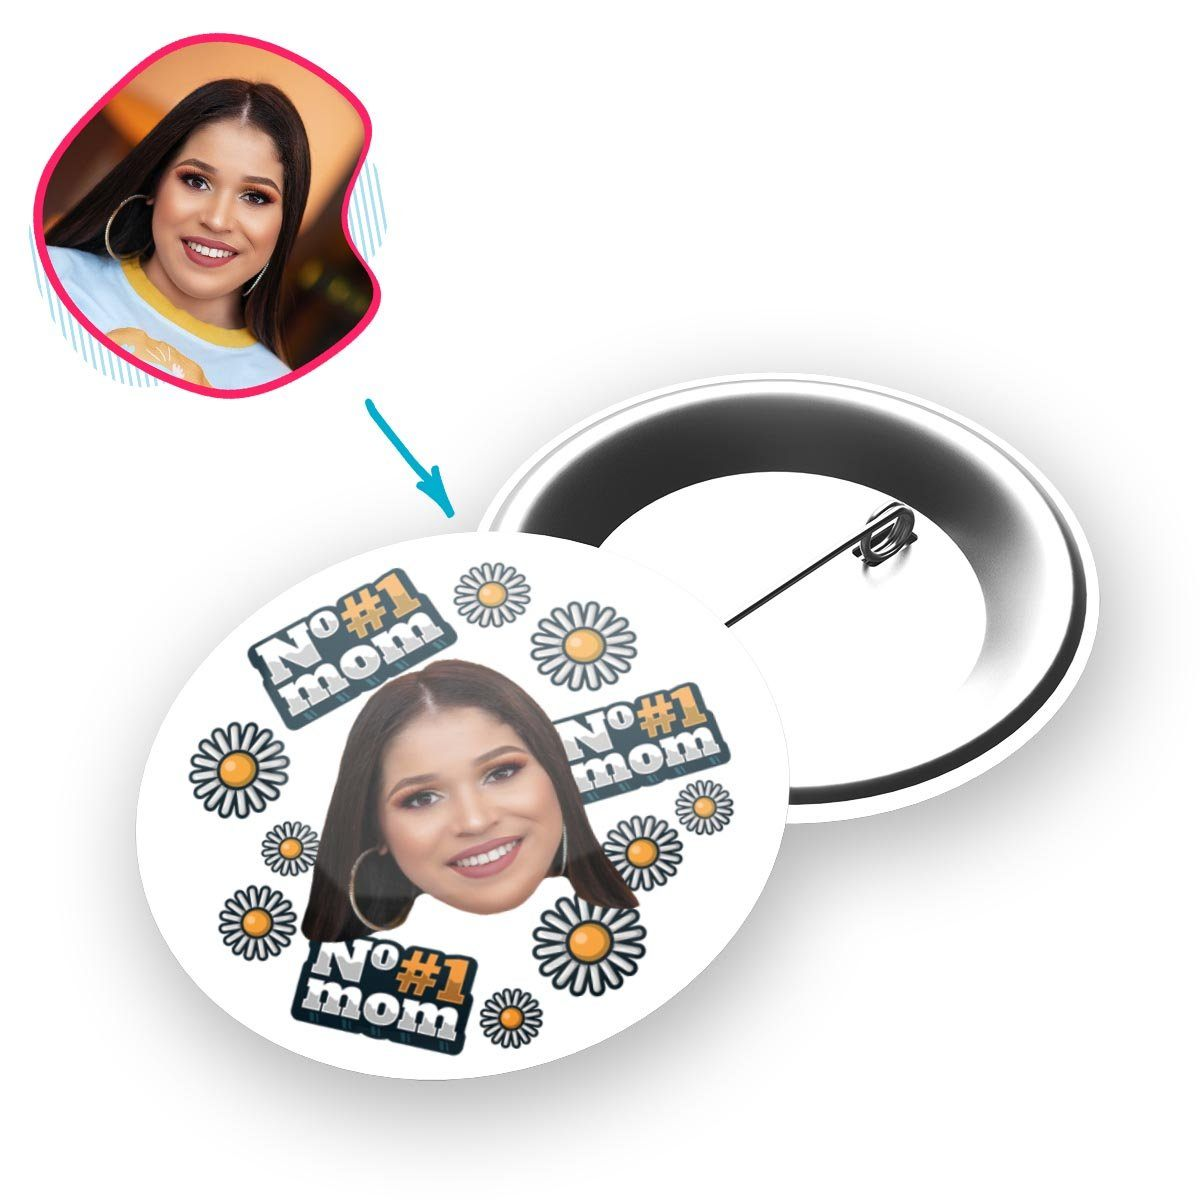 white #1 Mom pin personalized with photo of face printed on it